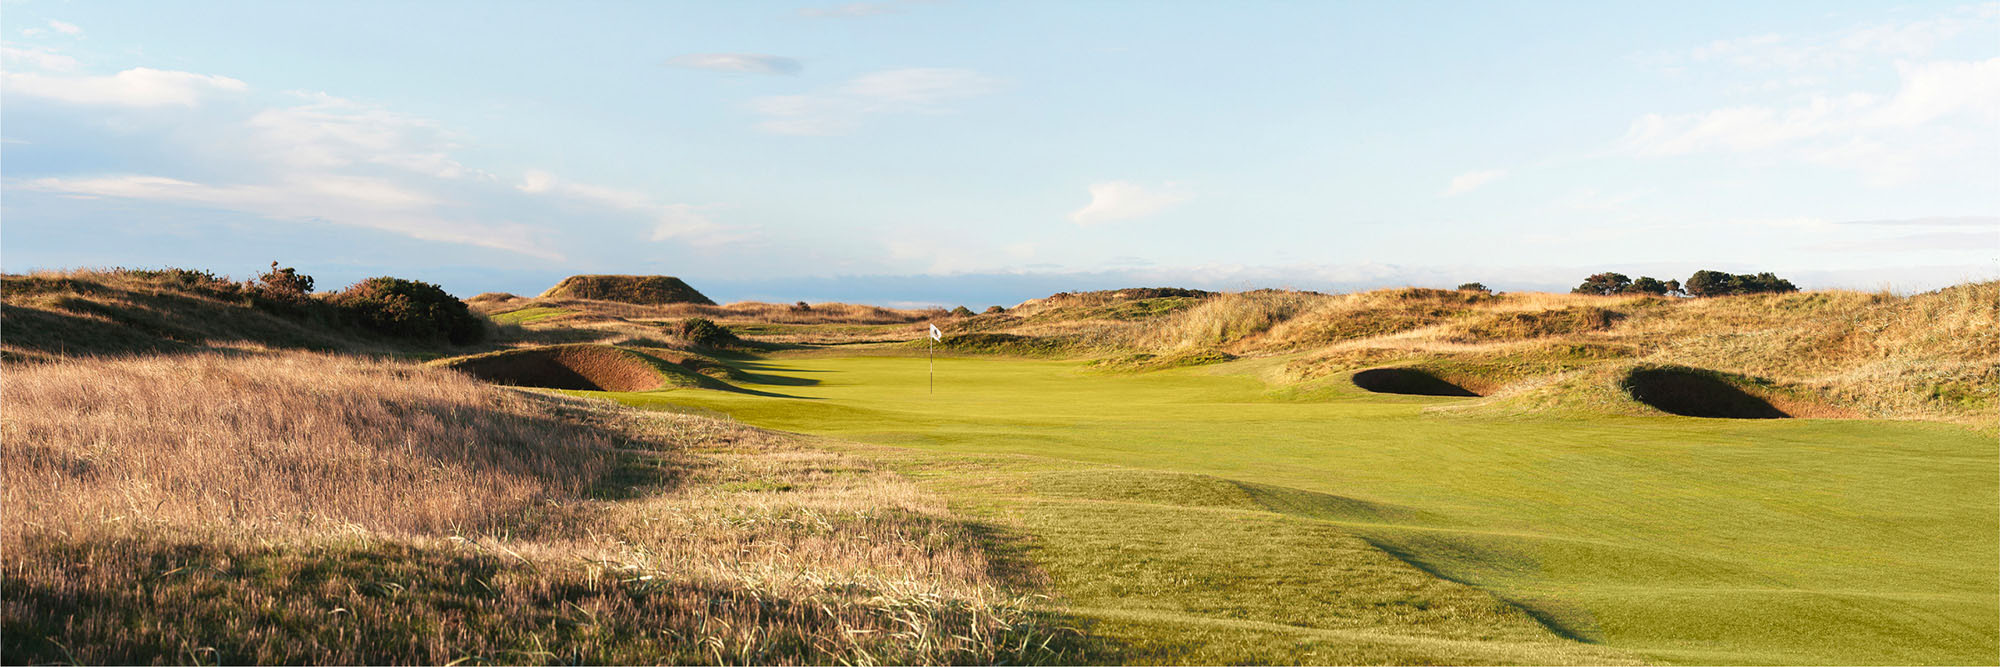 Golf Course Image - Carnoustie Golf Links No.2